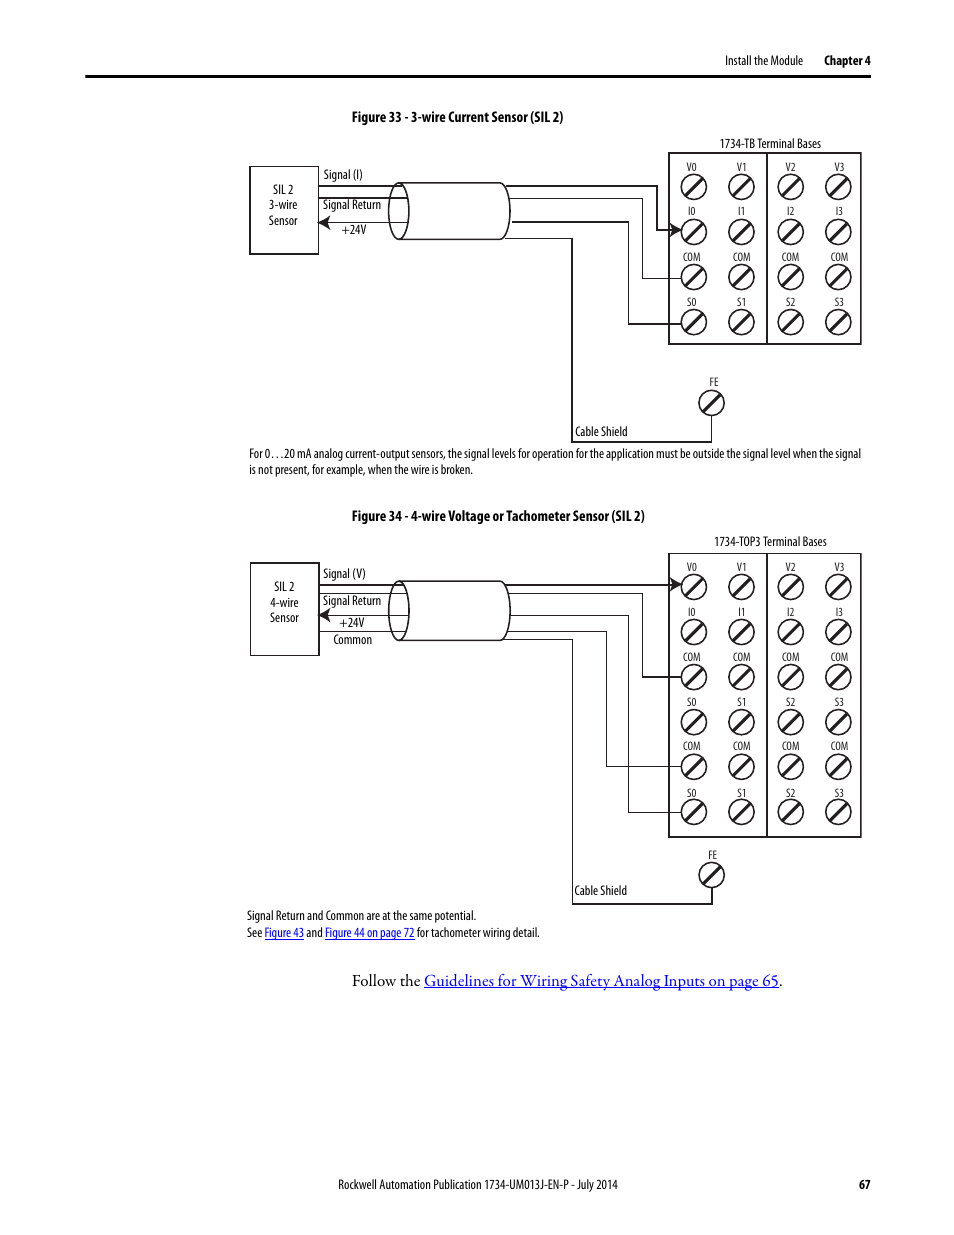 2001 Jaguar S Type Fuse Box Diagram. Jaguar. Wiring